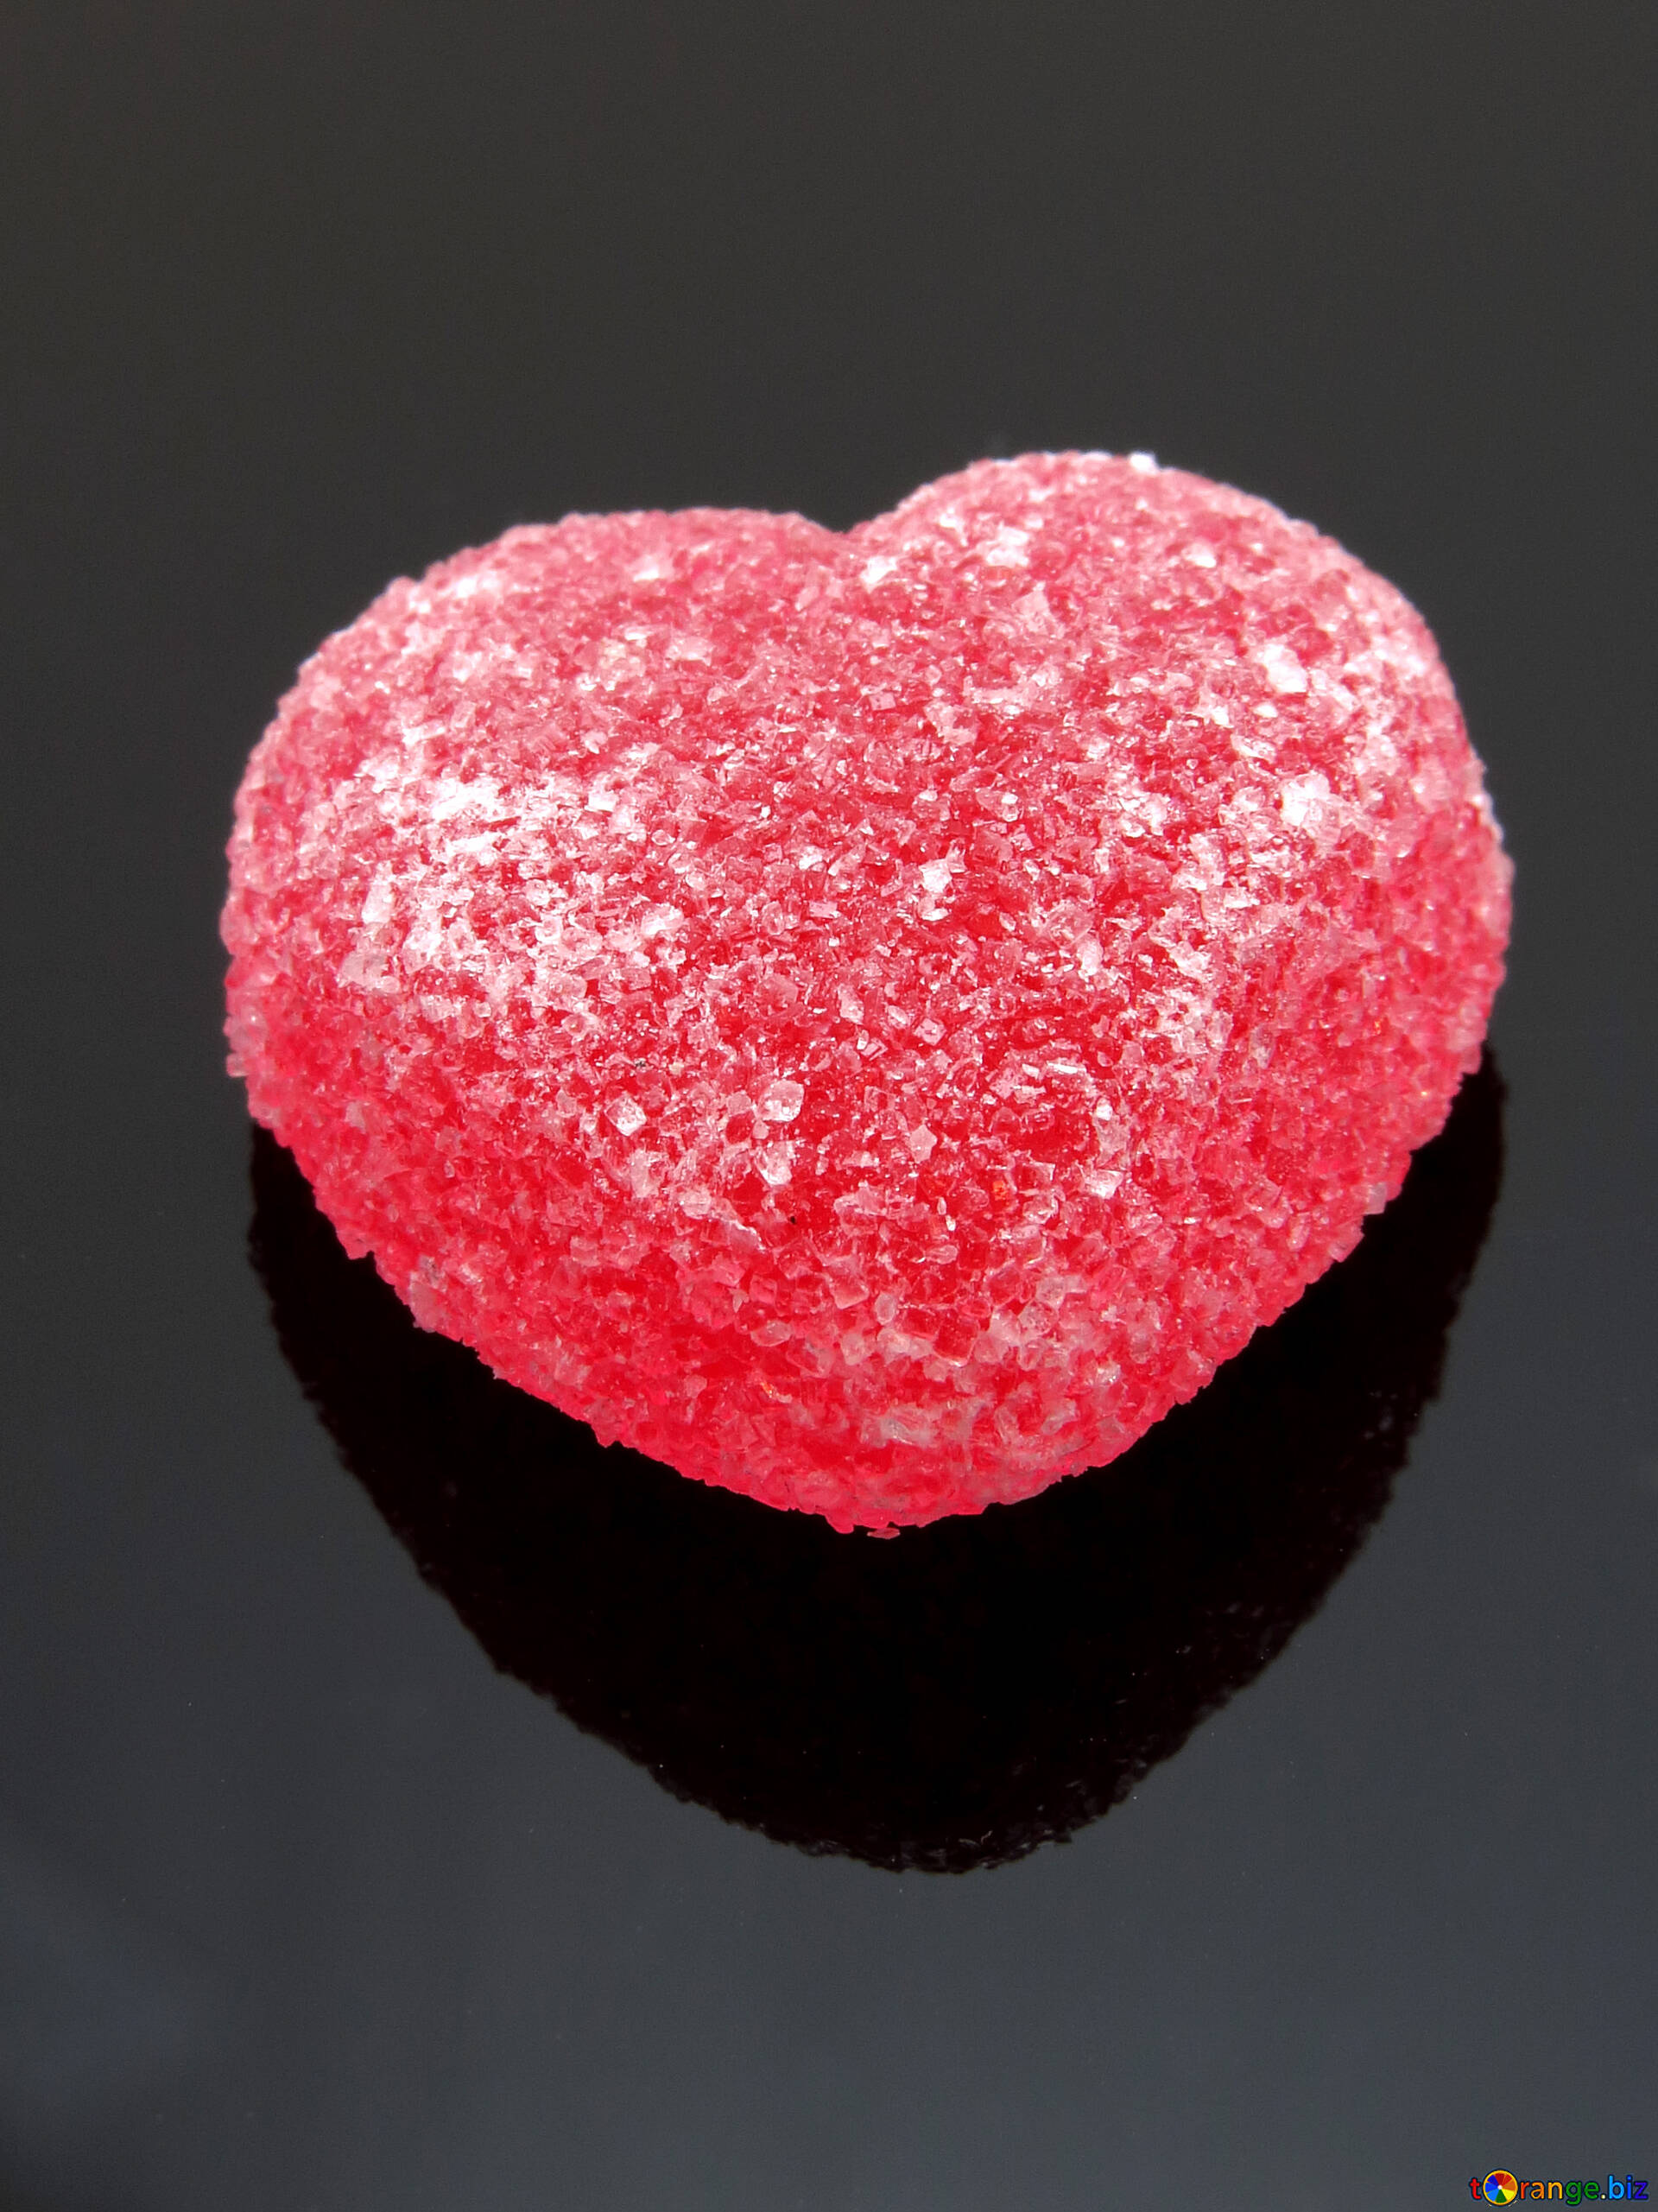 Jelly Candy Hearts Image Red Heart On Black Background Images Candy 18523 Torange Biz Free Pics On Cc By License